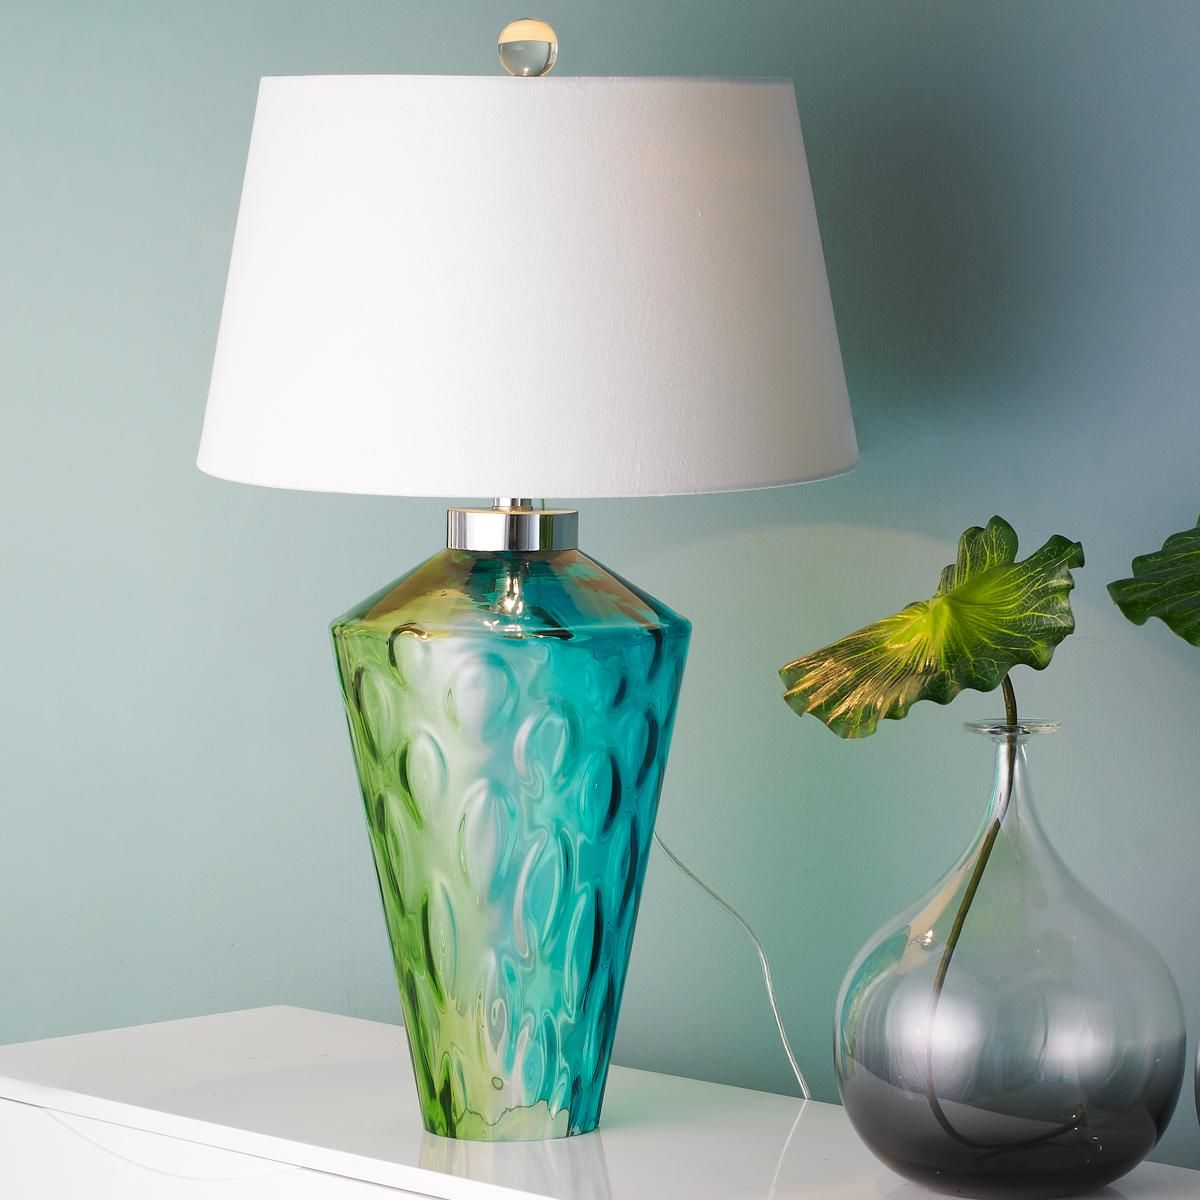 Awesome Seaside Water Glass Table Lamp Aqua Blue And Lime Green Glass Vase Has A  Rippling Water